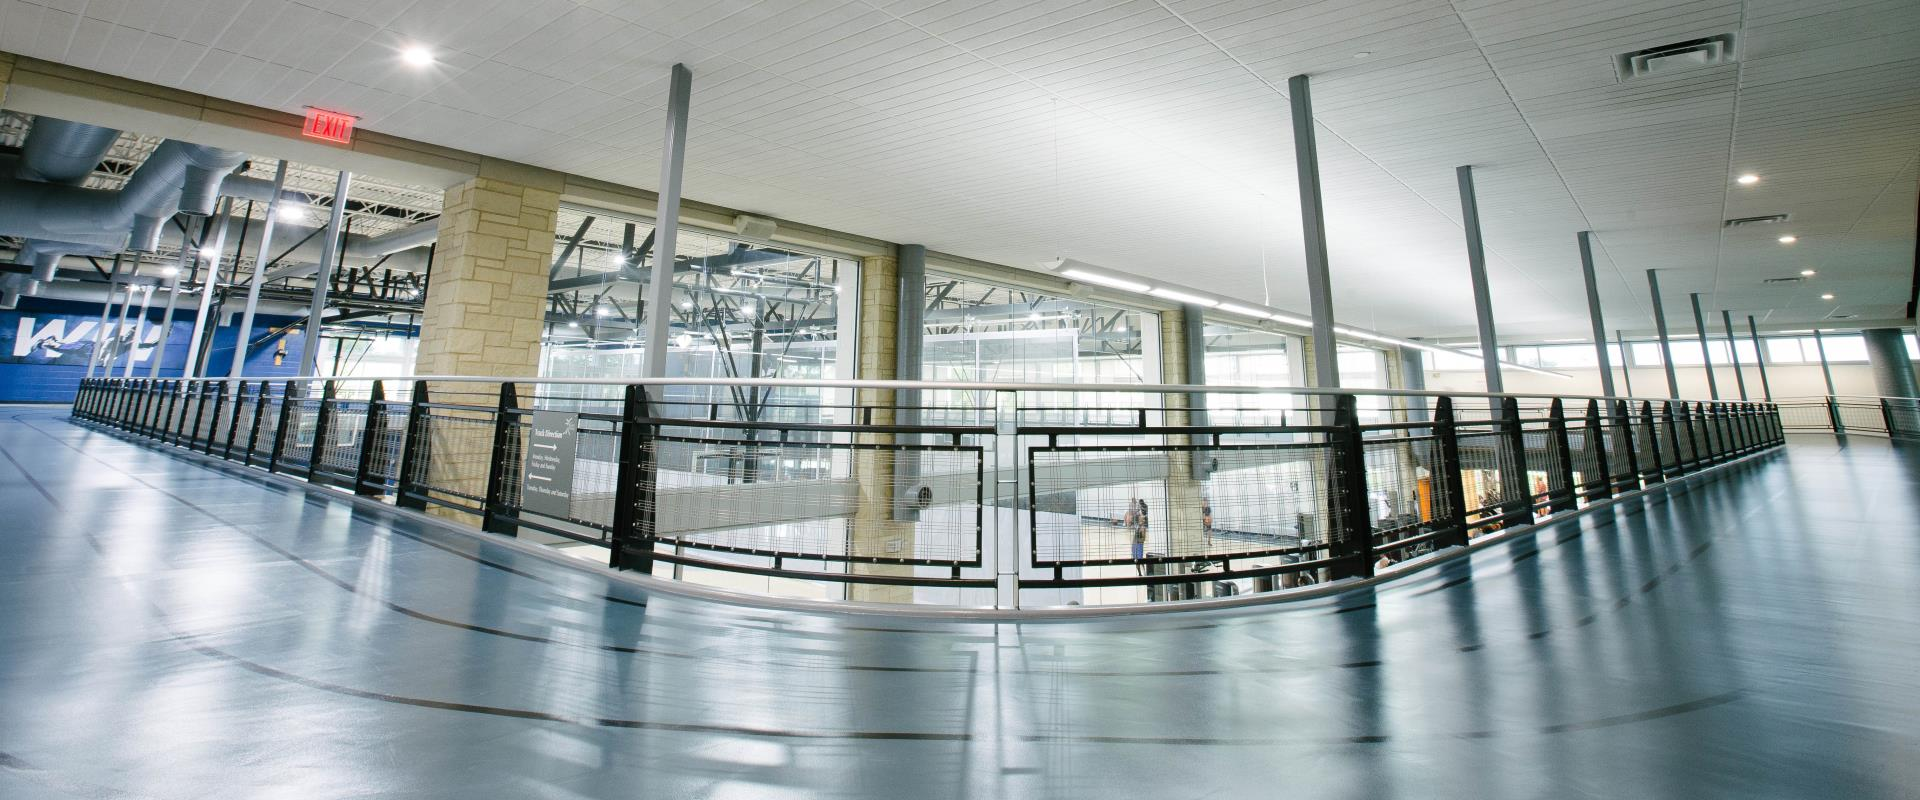 Indoor Track Gym